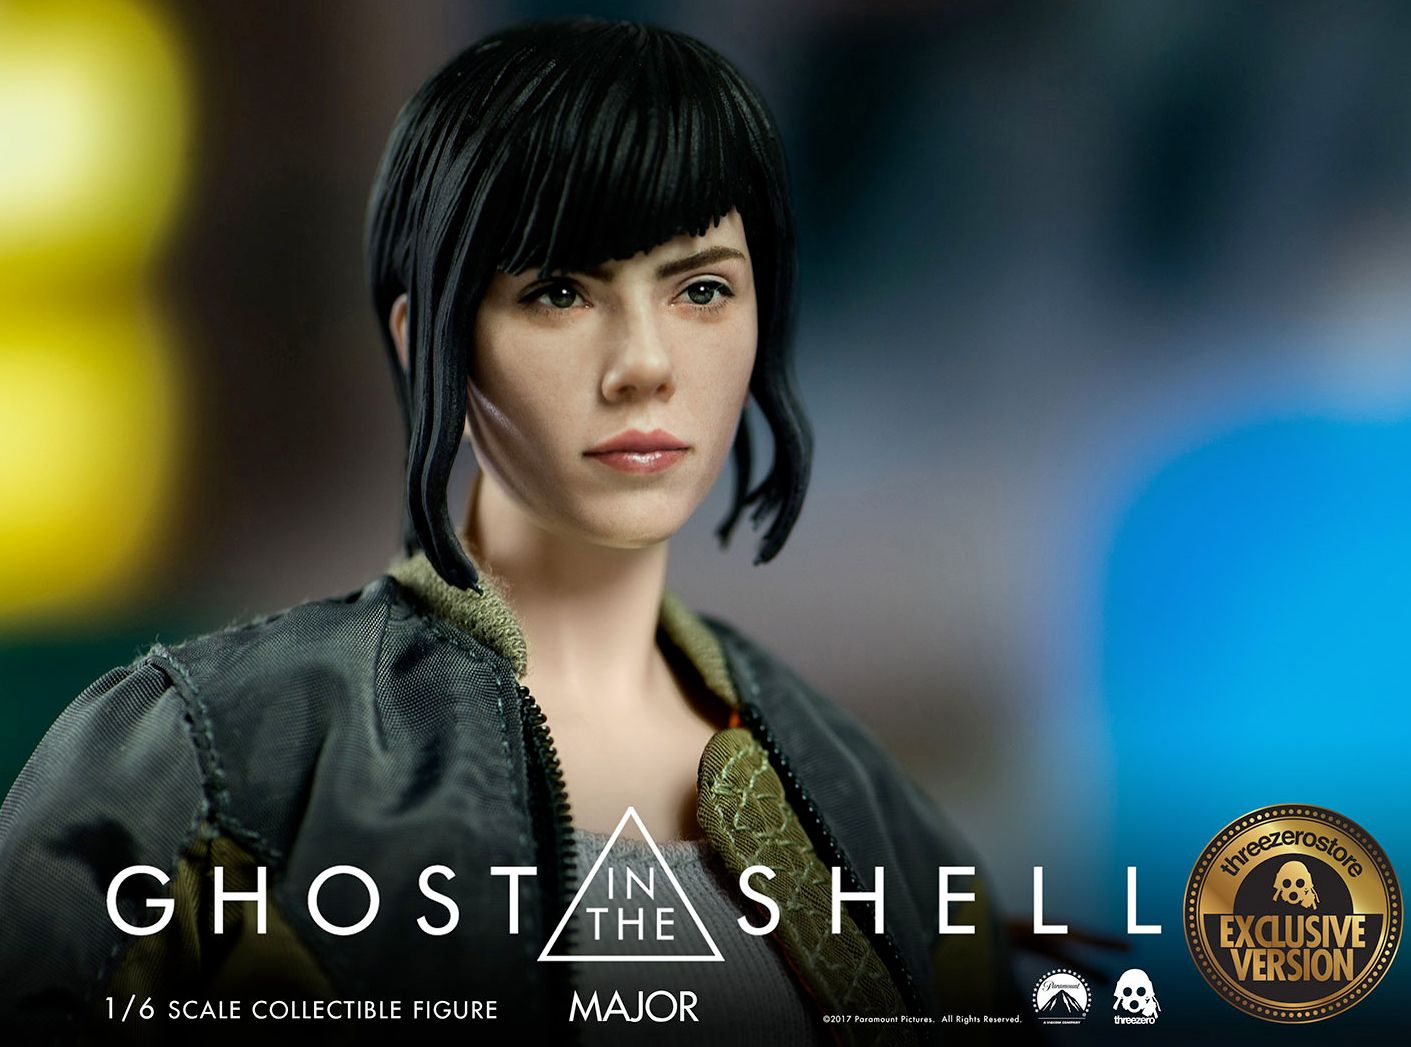 Ghost-In-The-Shell-MAJOR-Collectible-Action-Figure-02